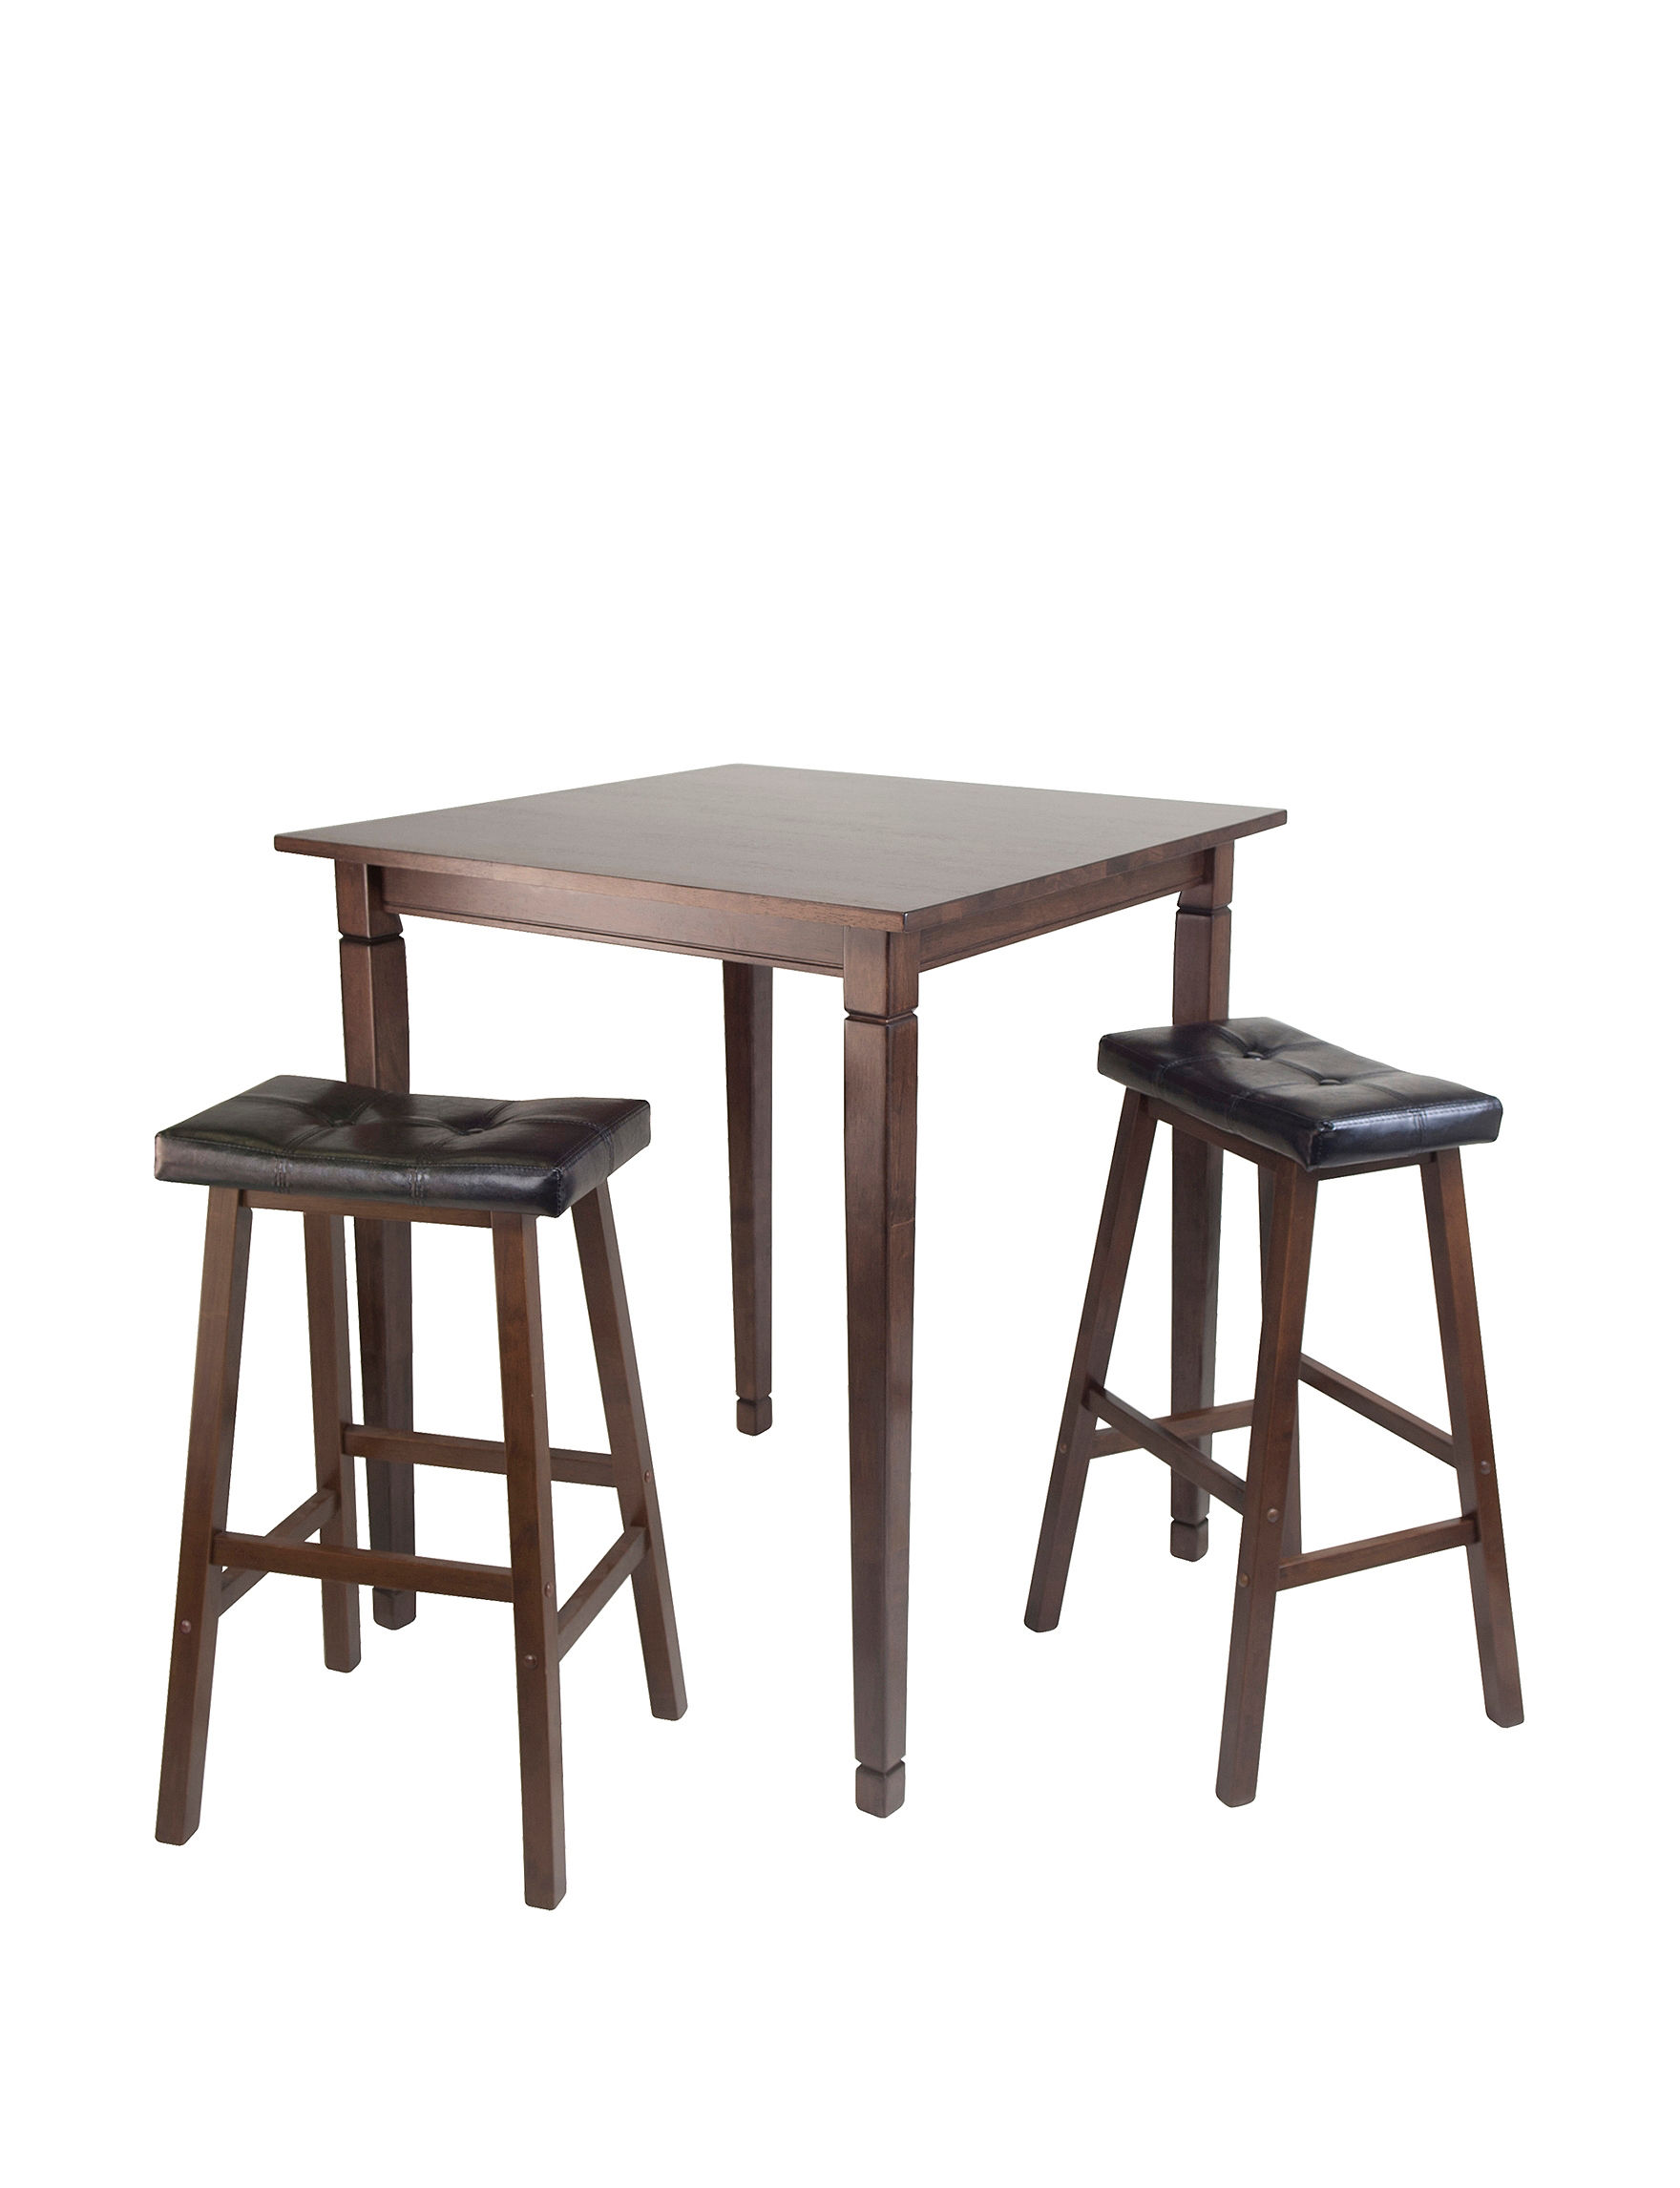 Winsome Brown Dining Room Sets Kitchen & Dining Furniture